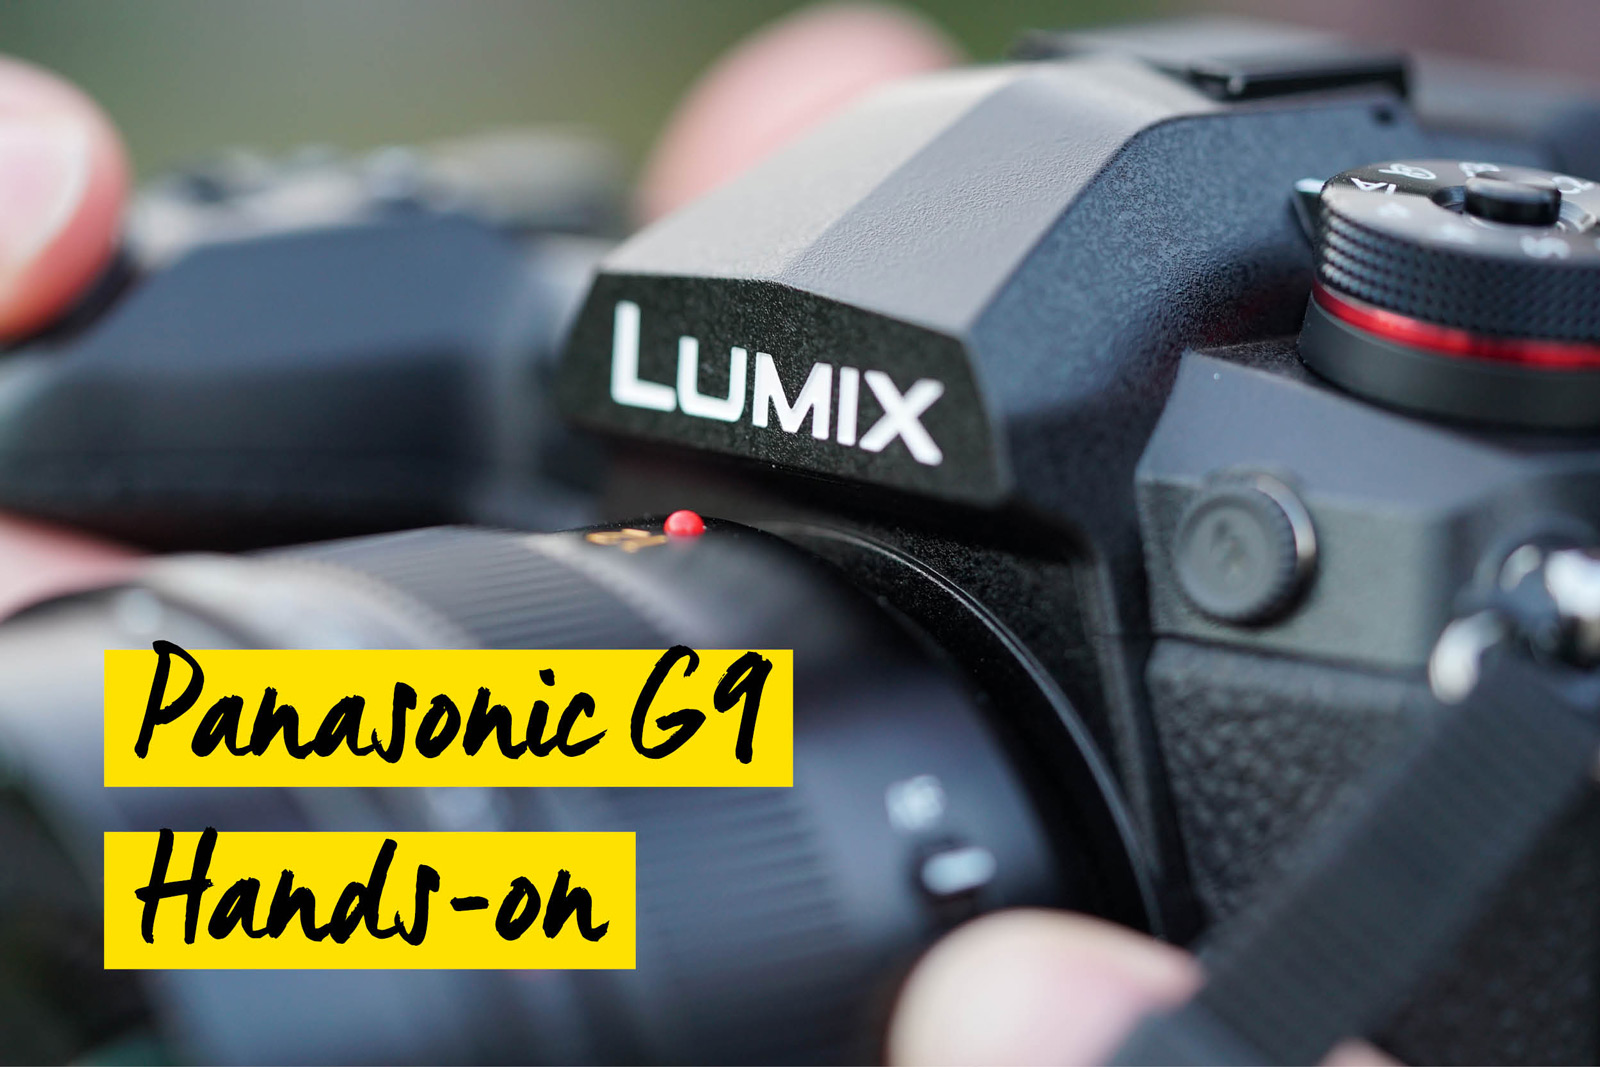 Panasonic G9 - Hands-on